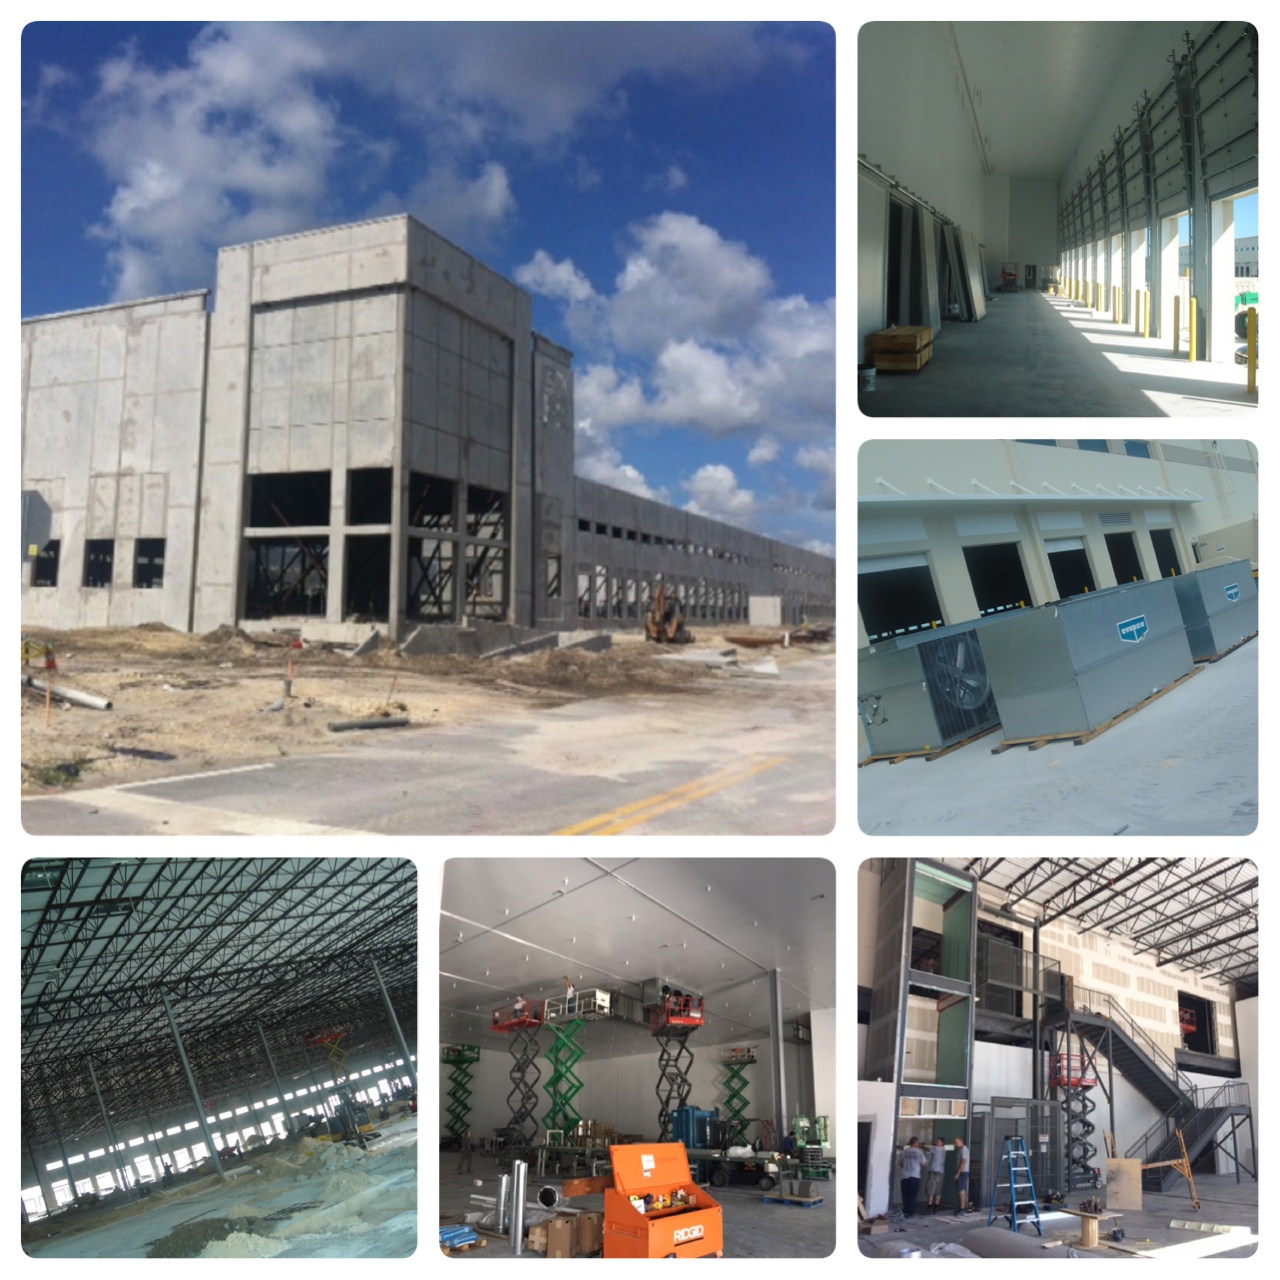 Building #2 under construction at South Florida Logistics Center in Miami